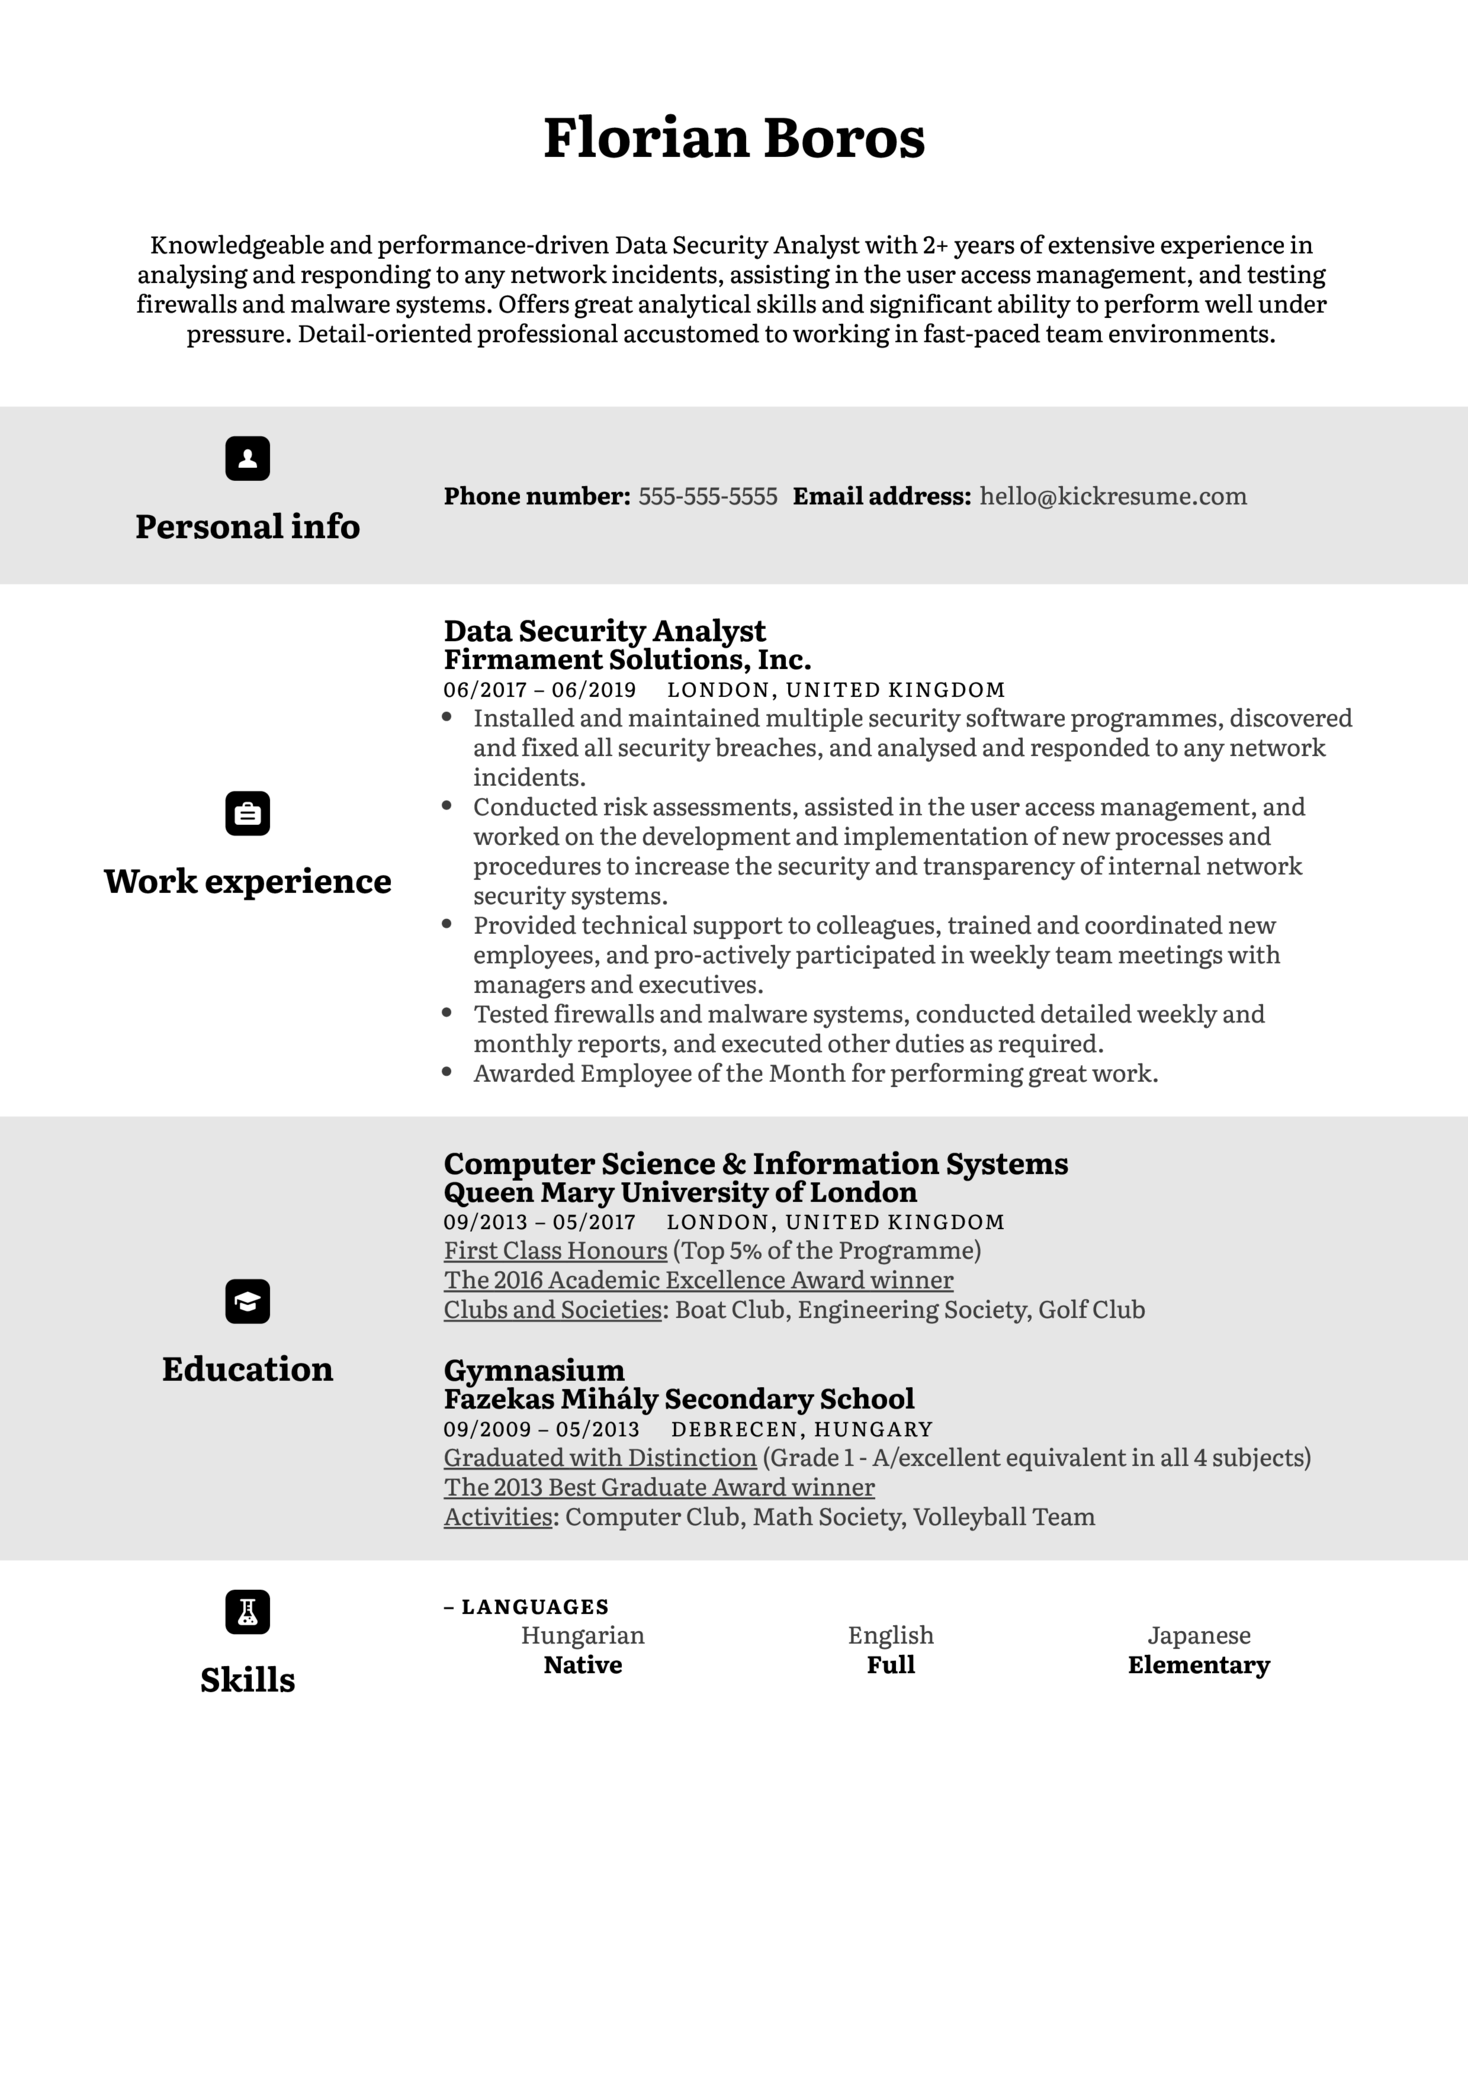 Data Security Analyst Resume Example (parte 1)